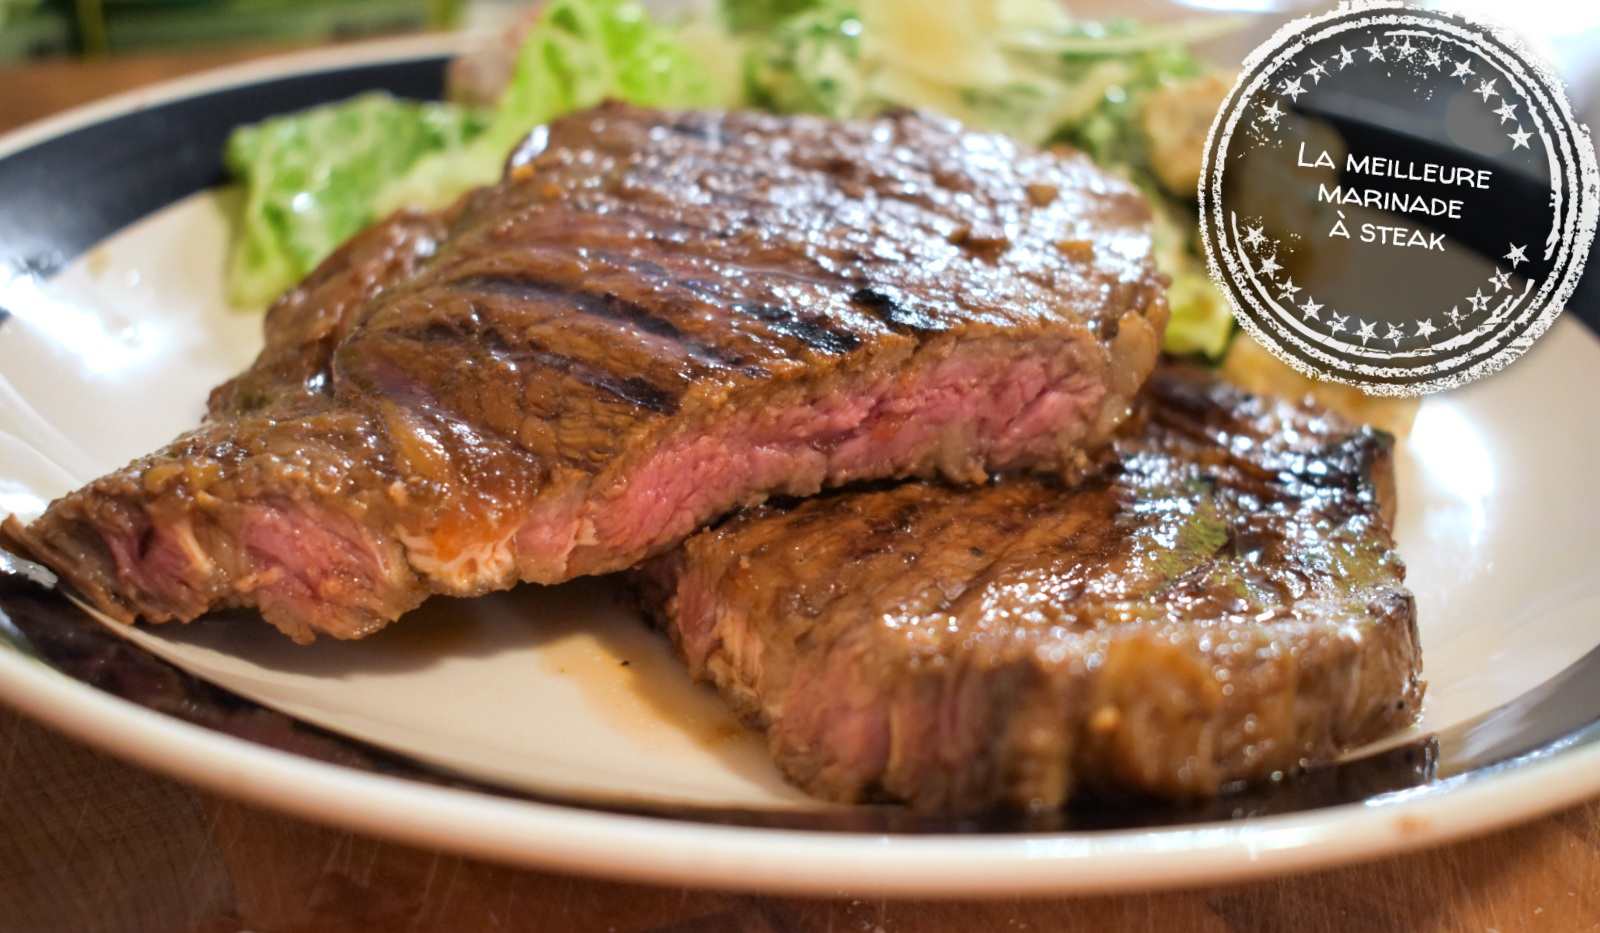 La meilleure marinade à steak - Auboutdelalangue.com